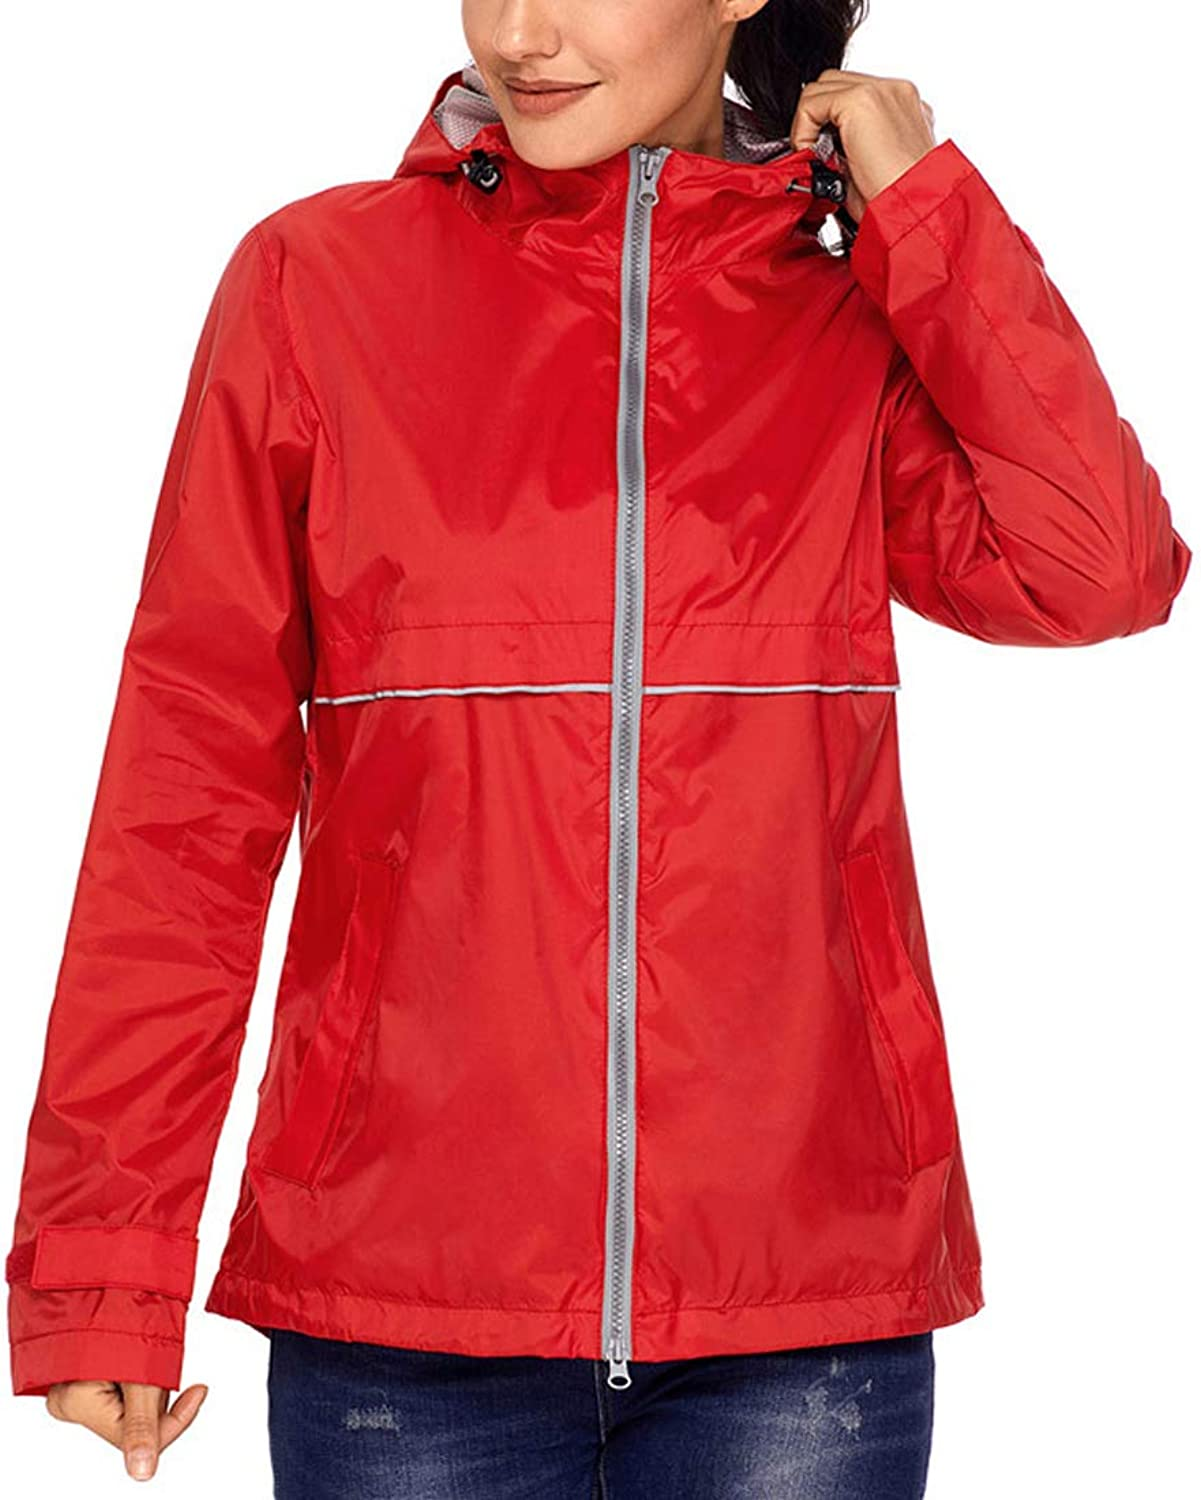 Alomoc Women's Waterproof Hooded Active Rain Jacket Mountaineering Windbreaker